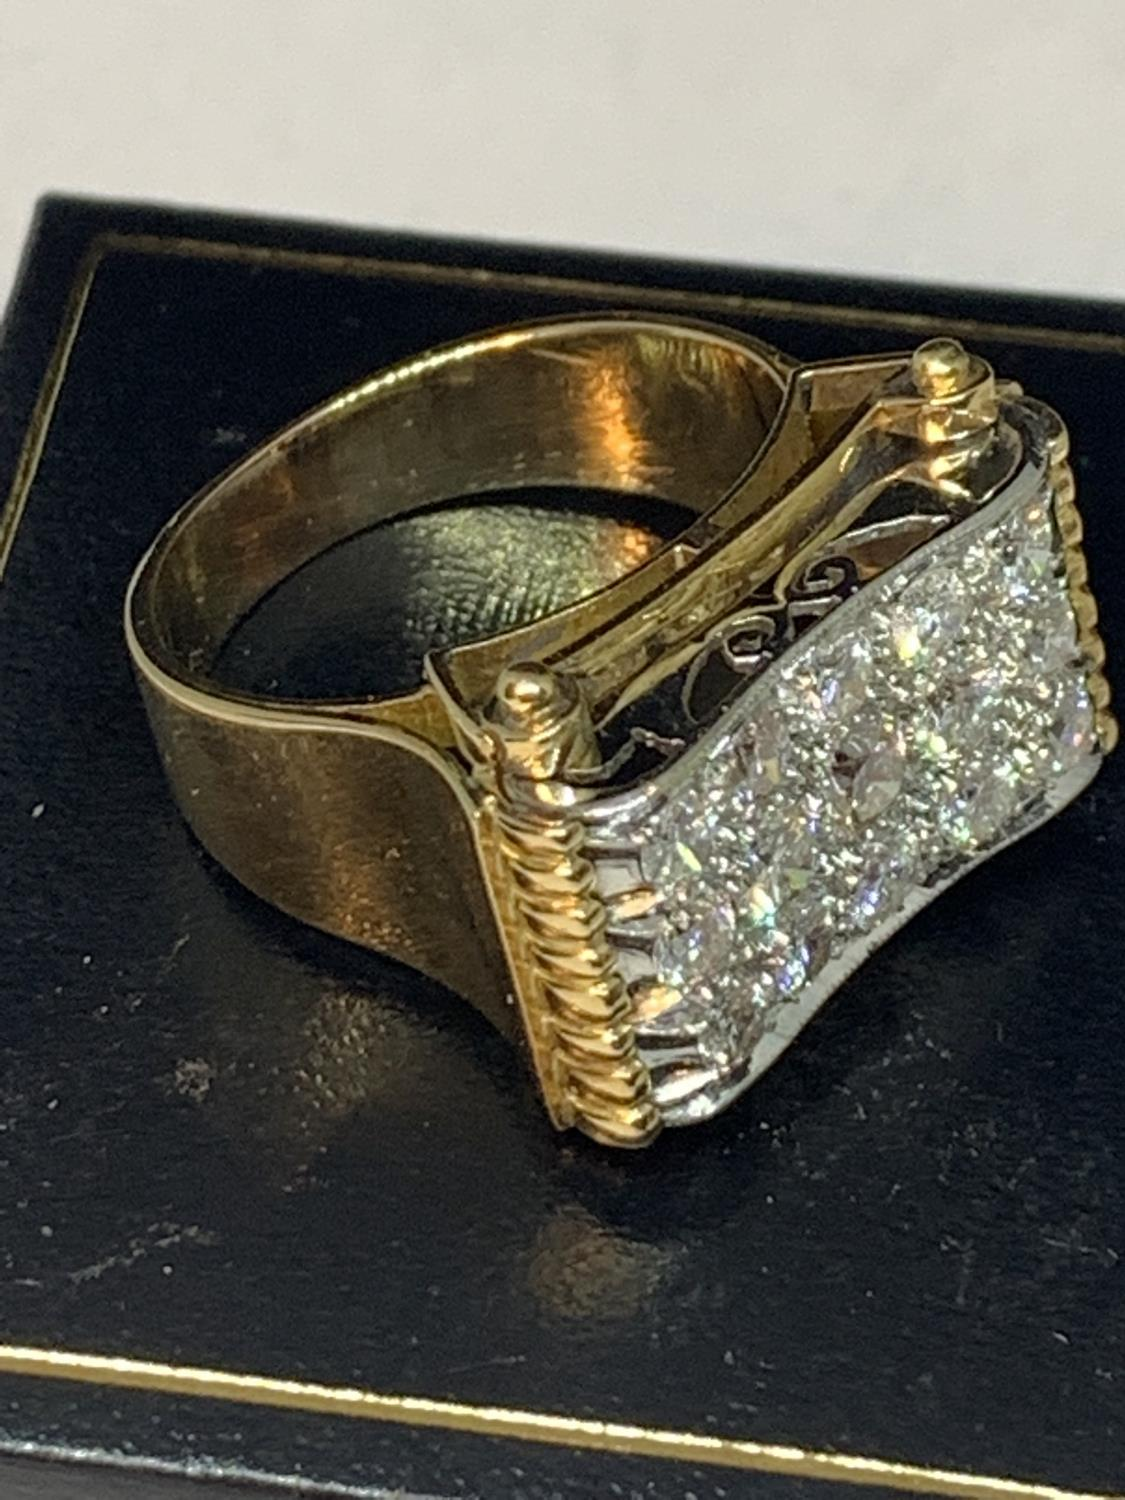 A HEAVY 18 CARAT GOLD RING WITH FIFTEEN DIAMONDS SET IN A RECTANGLE OF DIAMOND CHIPS GROSS WEIGHT 13 - Image 7 of 10